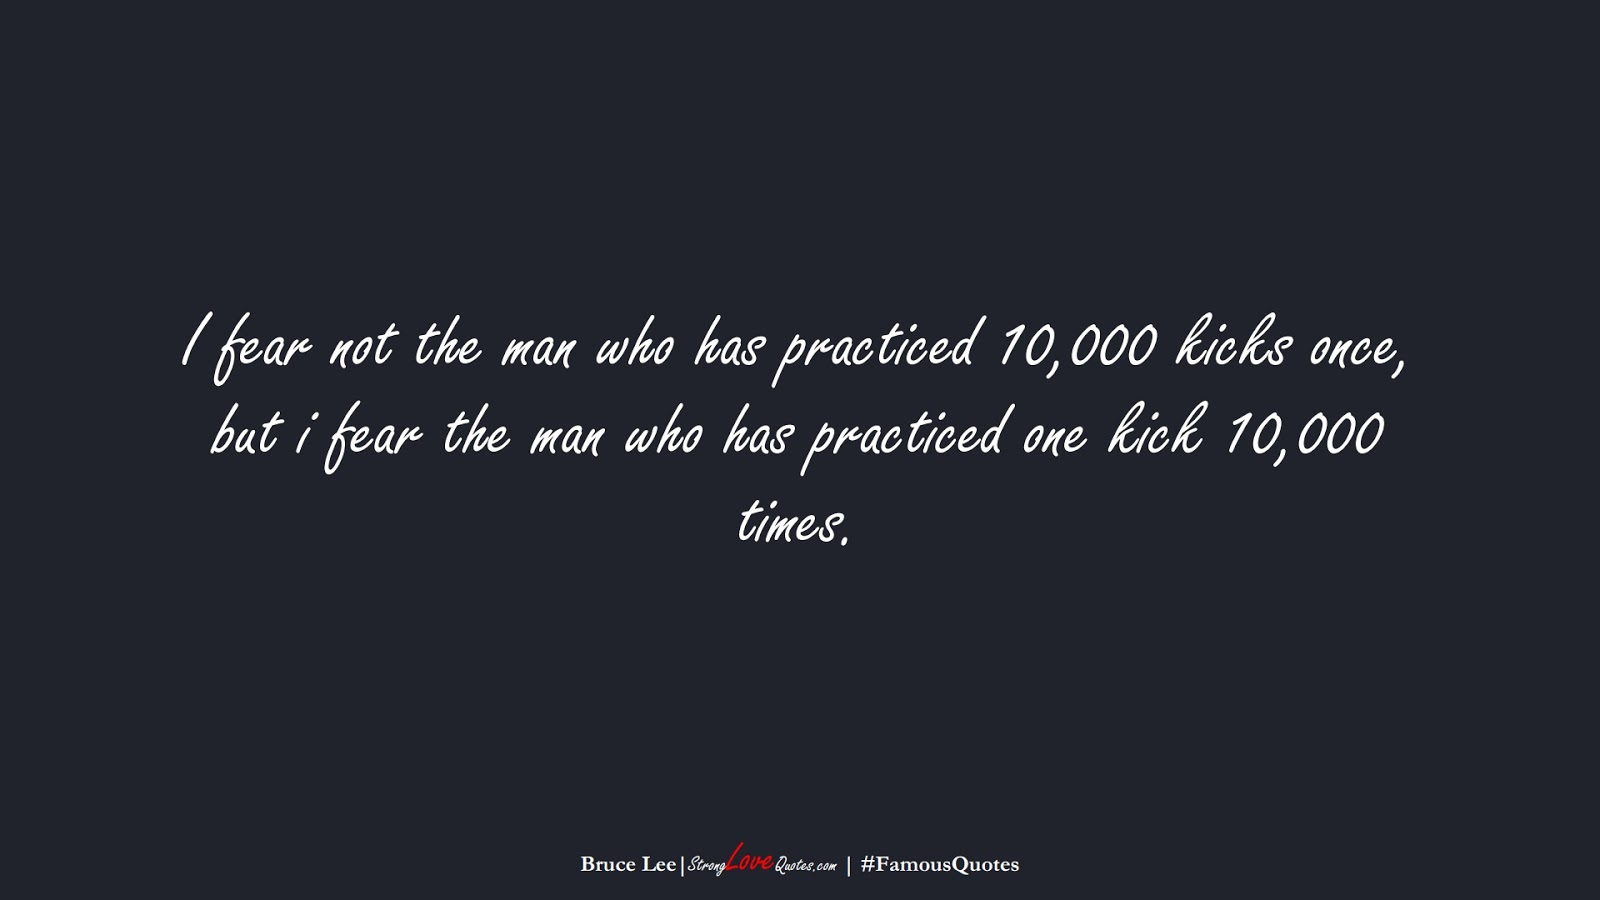 I fear not the man who has practiced 10,000 kicks once, but i fear the man who has practiced one kick 10,000 times. (Bruce Lee);  #FamousQuotes